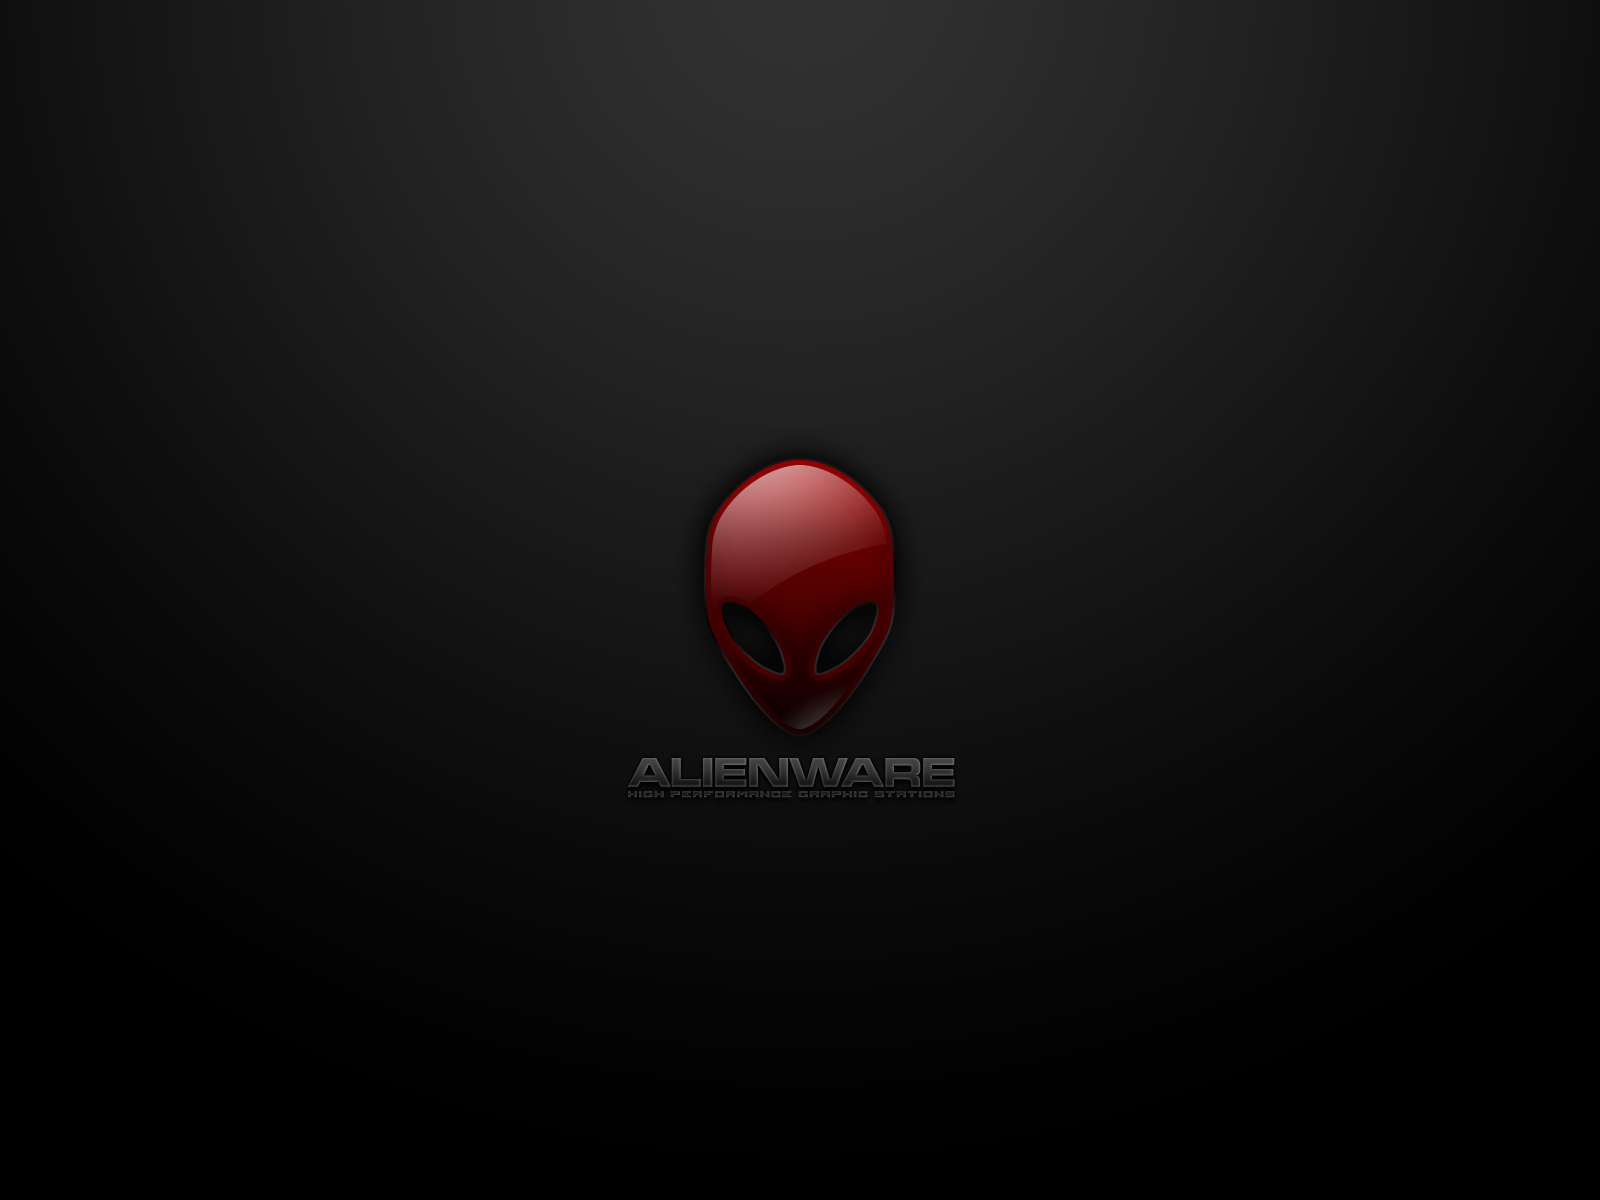 wallpaperslotcomdatamedia554Alienware Wallpaper HD 17jpg 1600x1200